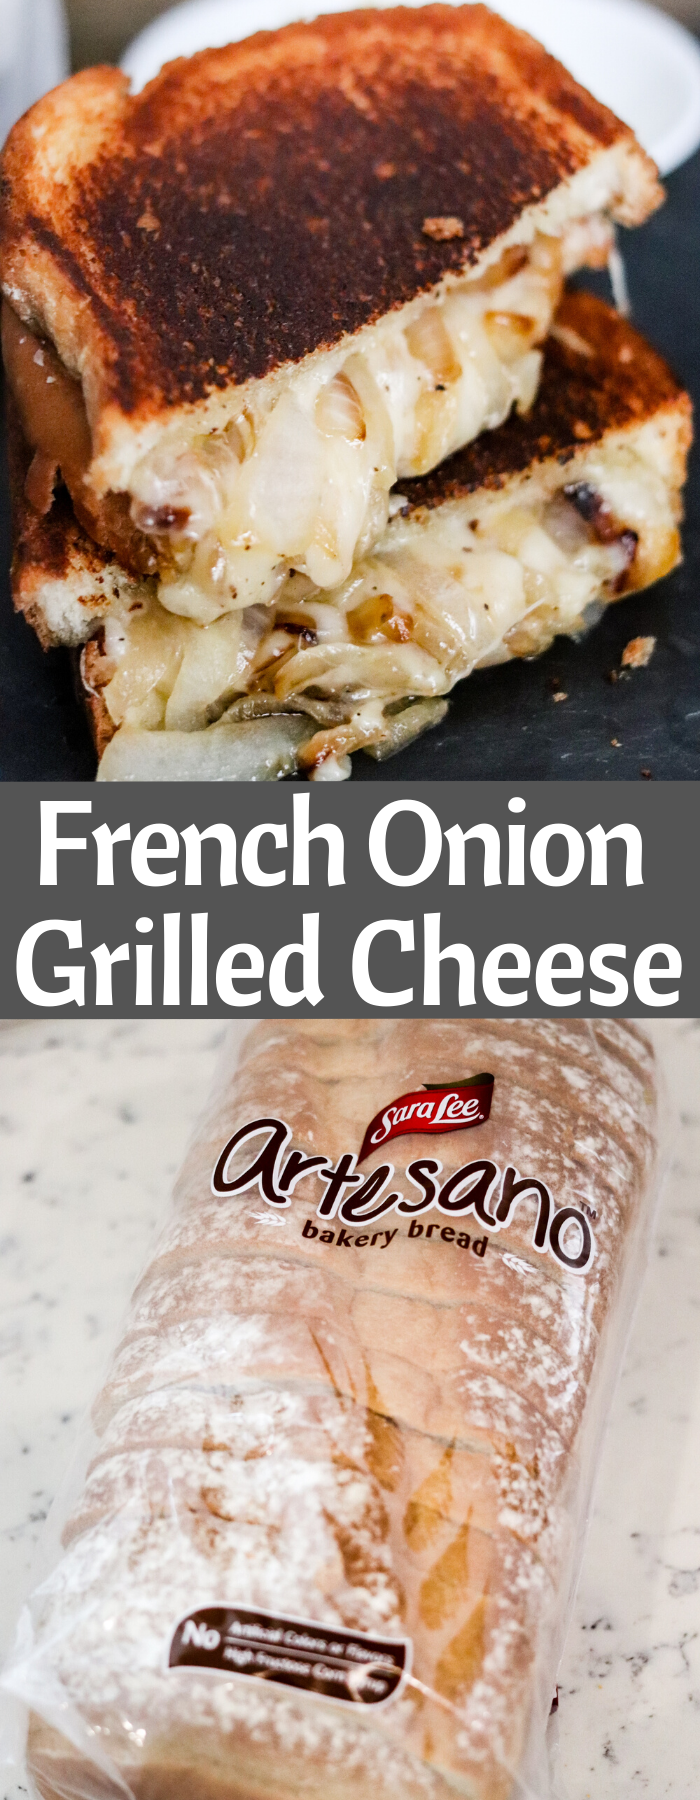 Caramelized sweet Vidalia onions mixed with rich Gruyère cheese and melted between a thick sliced crusty bread makes the perfect French Onion Grilled Cheese.